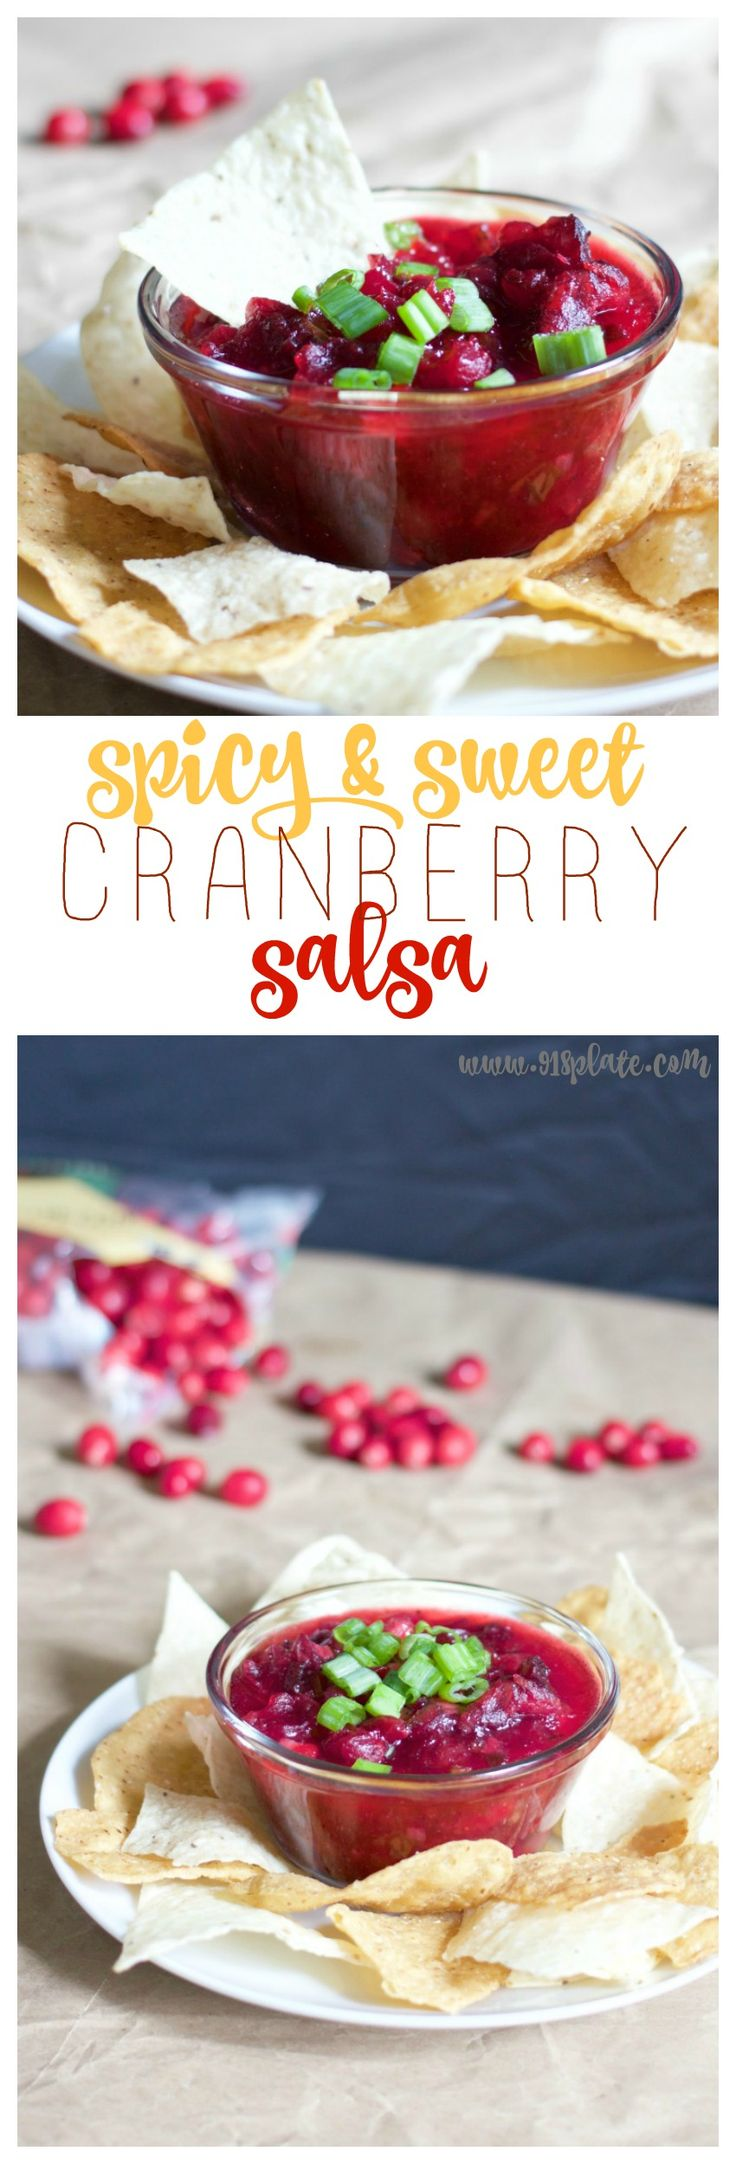 1000+ ideas about Cranberry Salsa on Pinterest ...